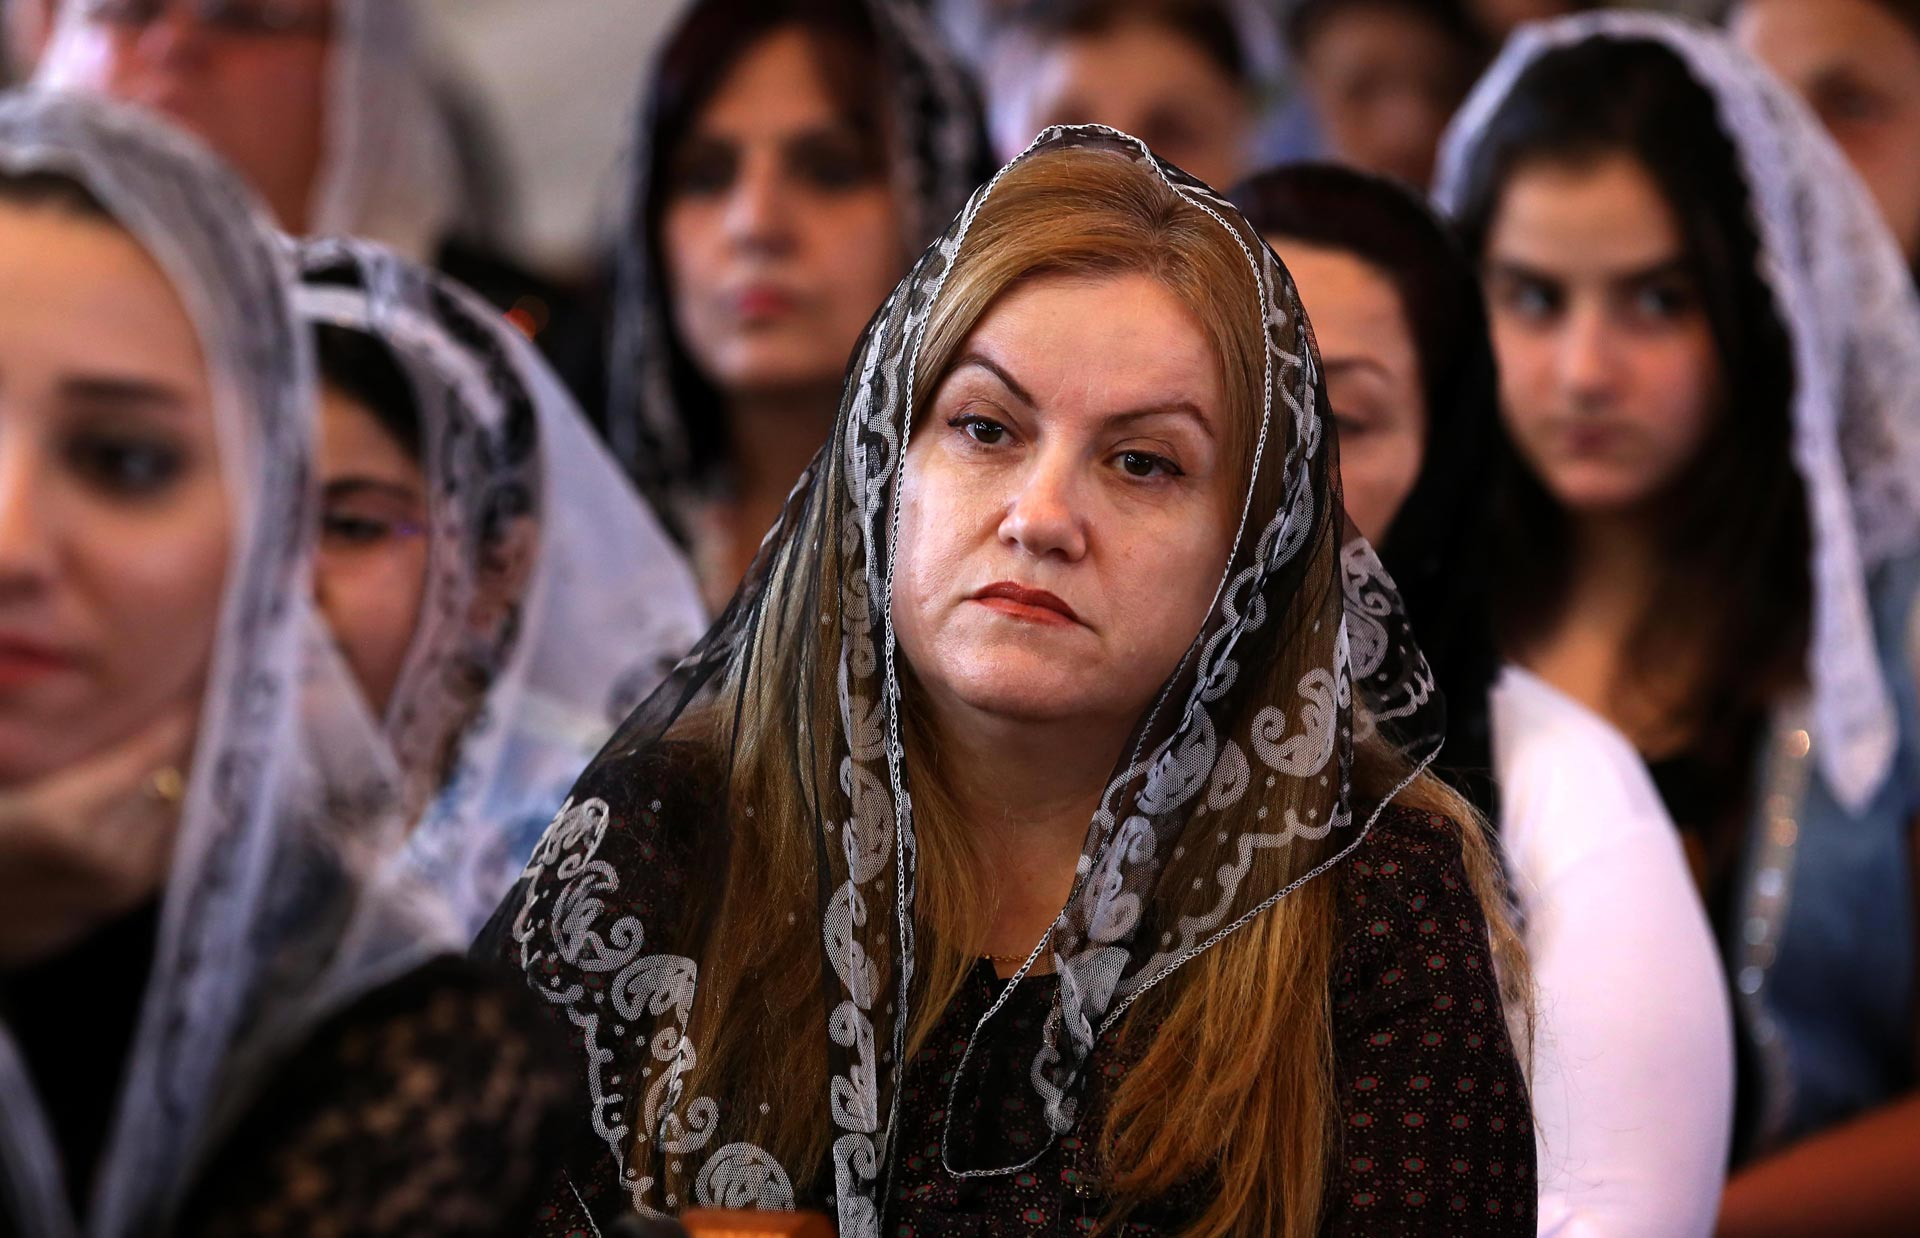 Iraqi Assyrian Christians attend a ceremony at Saint Youhanna church in Arbil, the capital of the autonomous Kurdish region of northern Iraq on September 18, 2015.